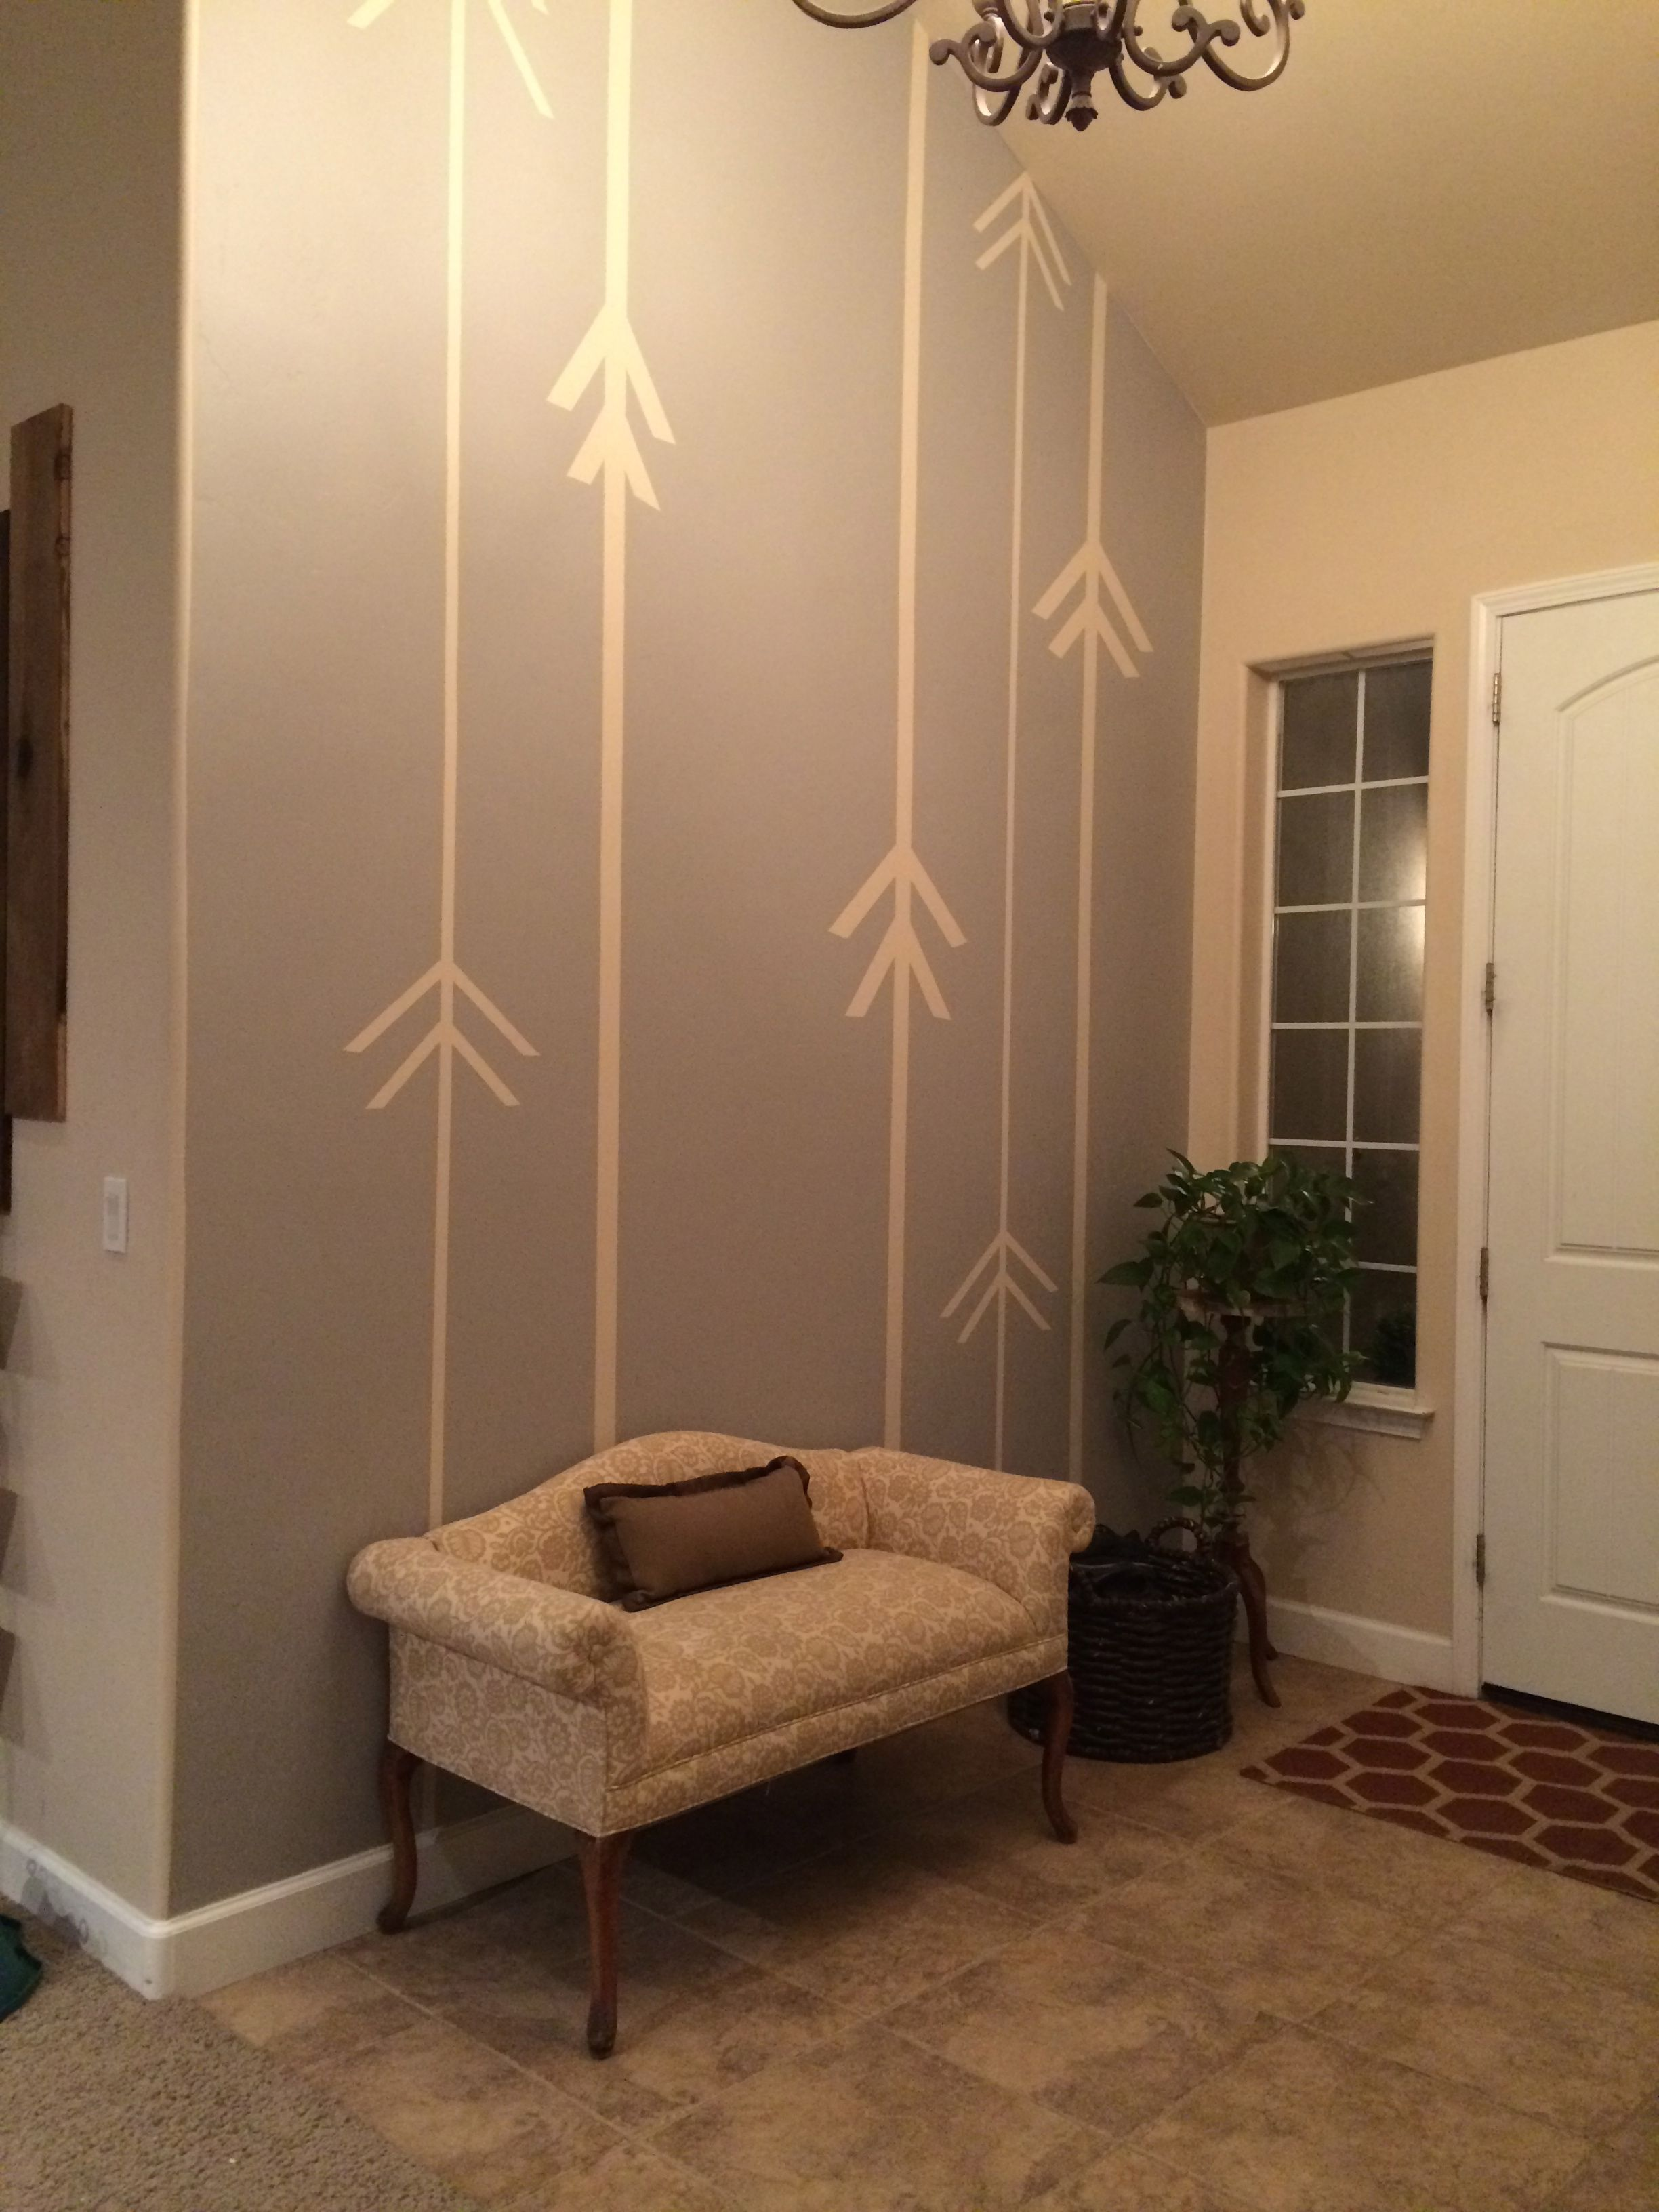 Accent Wall Inspiration Home decor, Home, Room